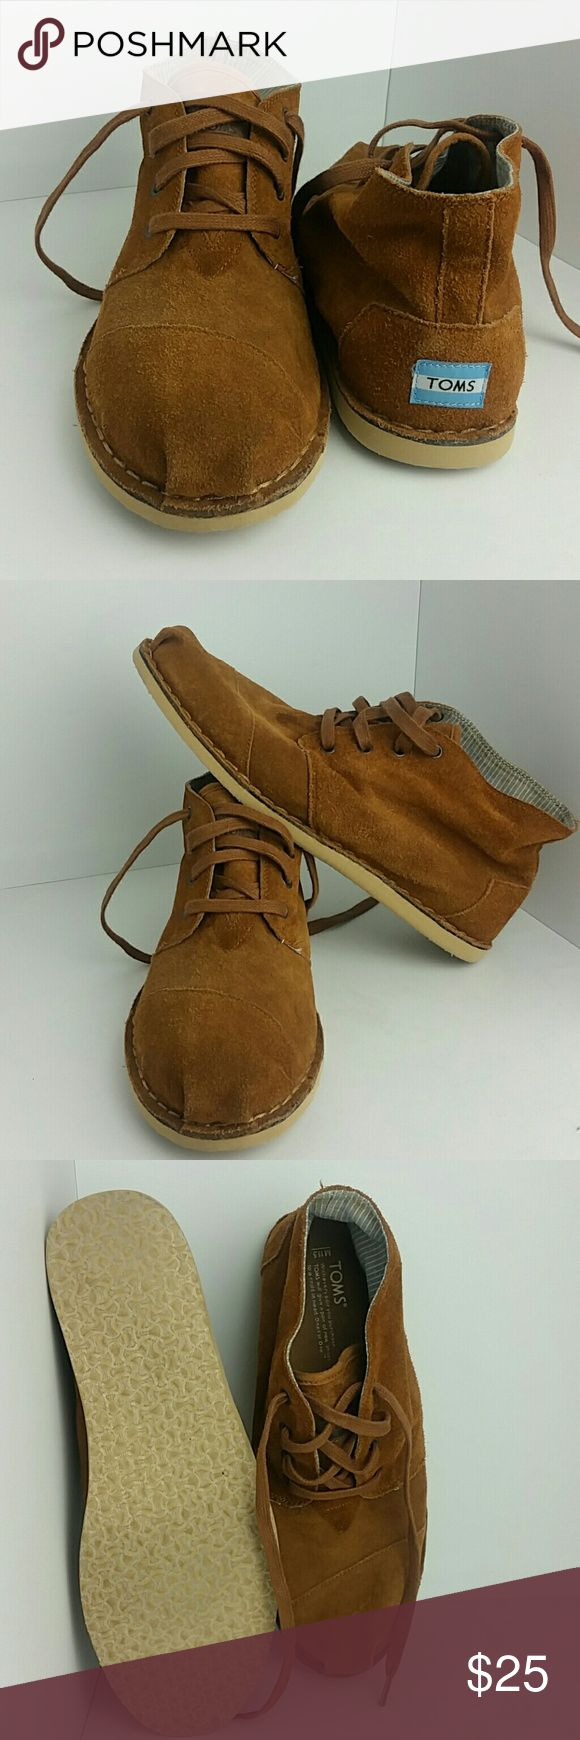 TOMS MEN'S FASHION CHUKKA SNEAKERS VERY CLEAN INSIDE-OUT   SKE # TKO TOMS Shoes Sneakers